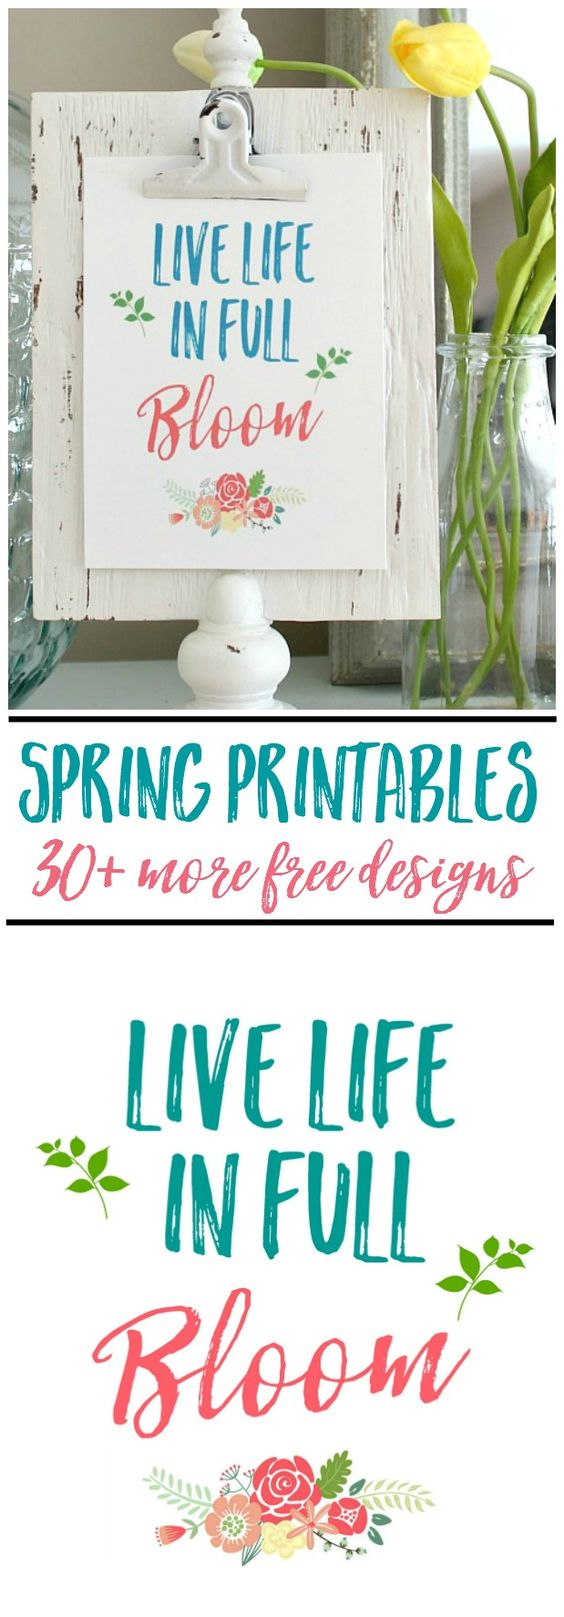 "Beautiful collection of free spring printables and spring vignette ideas ""Live Life in FULL BLOOM"" via Clean and Scentsible"